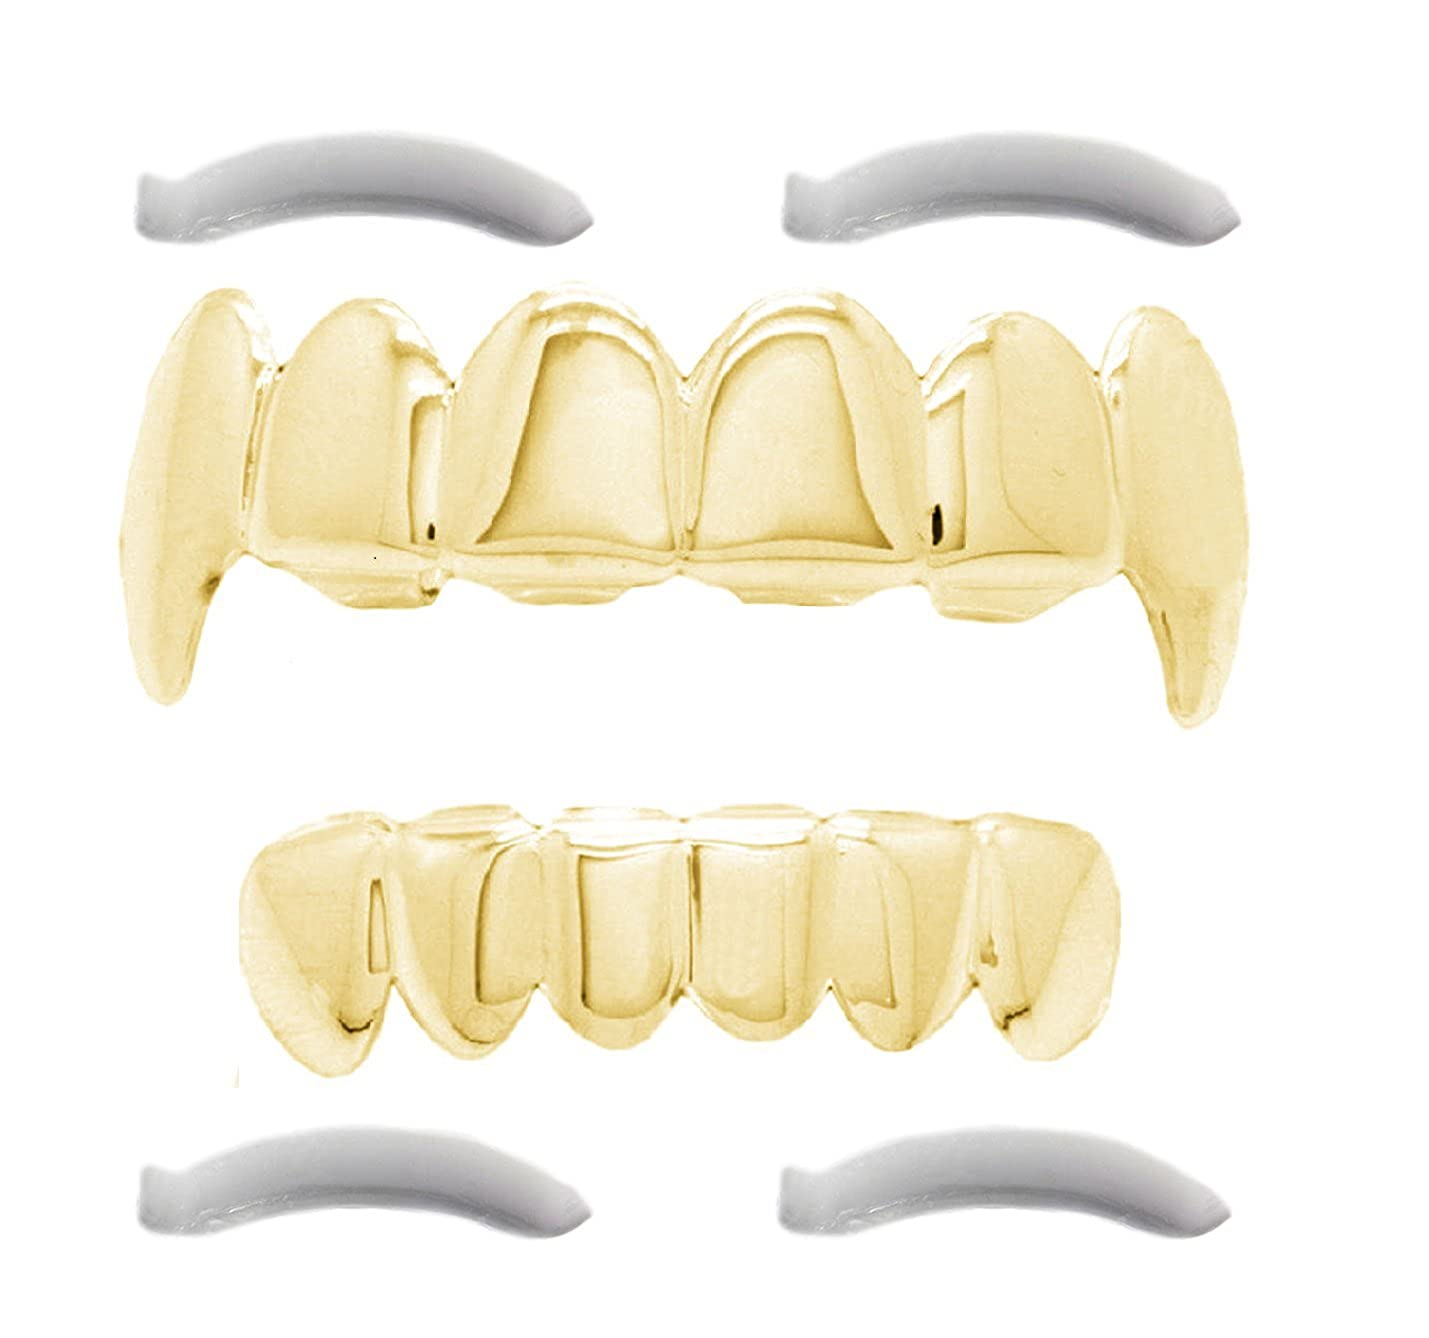 Grillz placcato in oro 24K con denti aguzzi per bocca set denti Hip Hop superiore inferiore + 2 barre di modellatura extra Top Class Jewels TC-GRI-ES